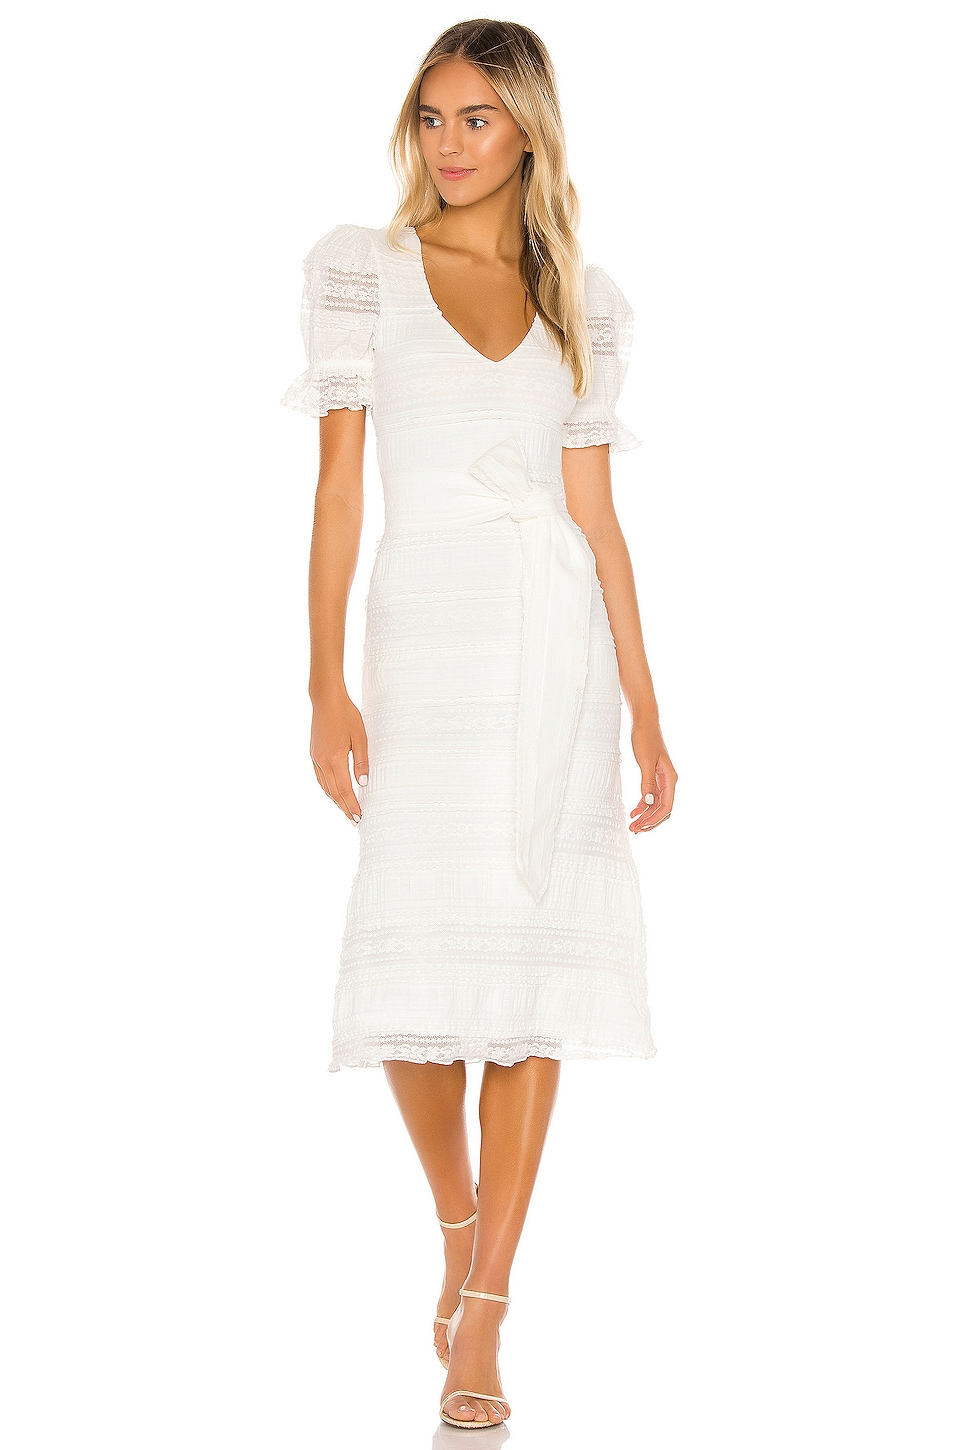 Quinn Midi Dress             Tularosa                                                                                                       CA$ 226.98 1